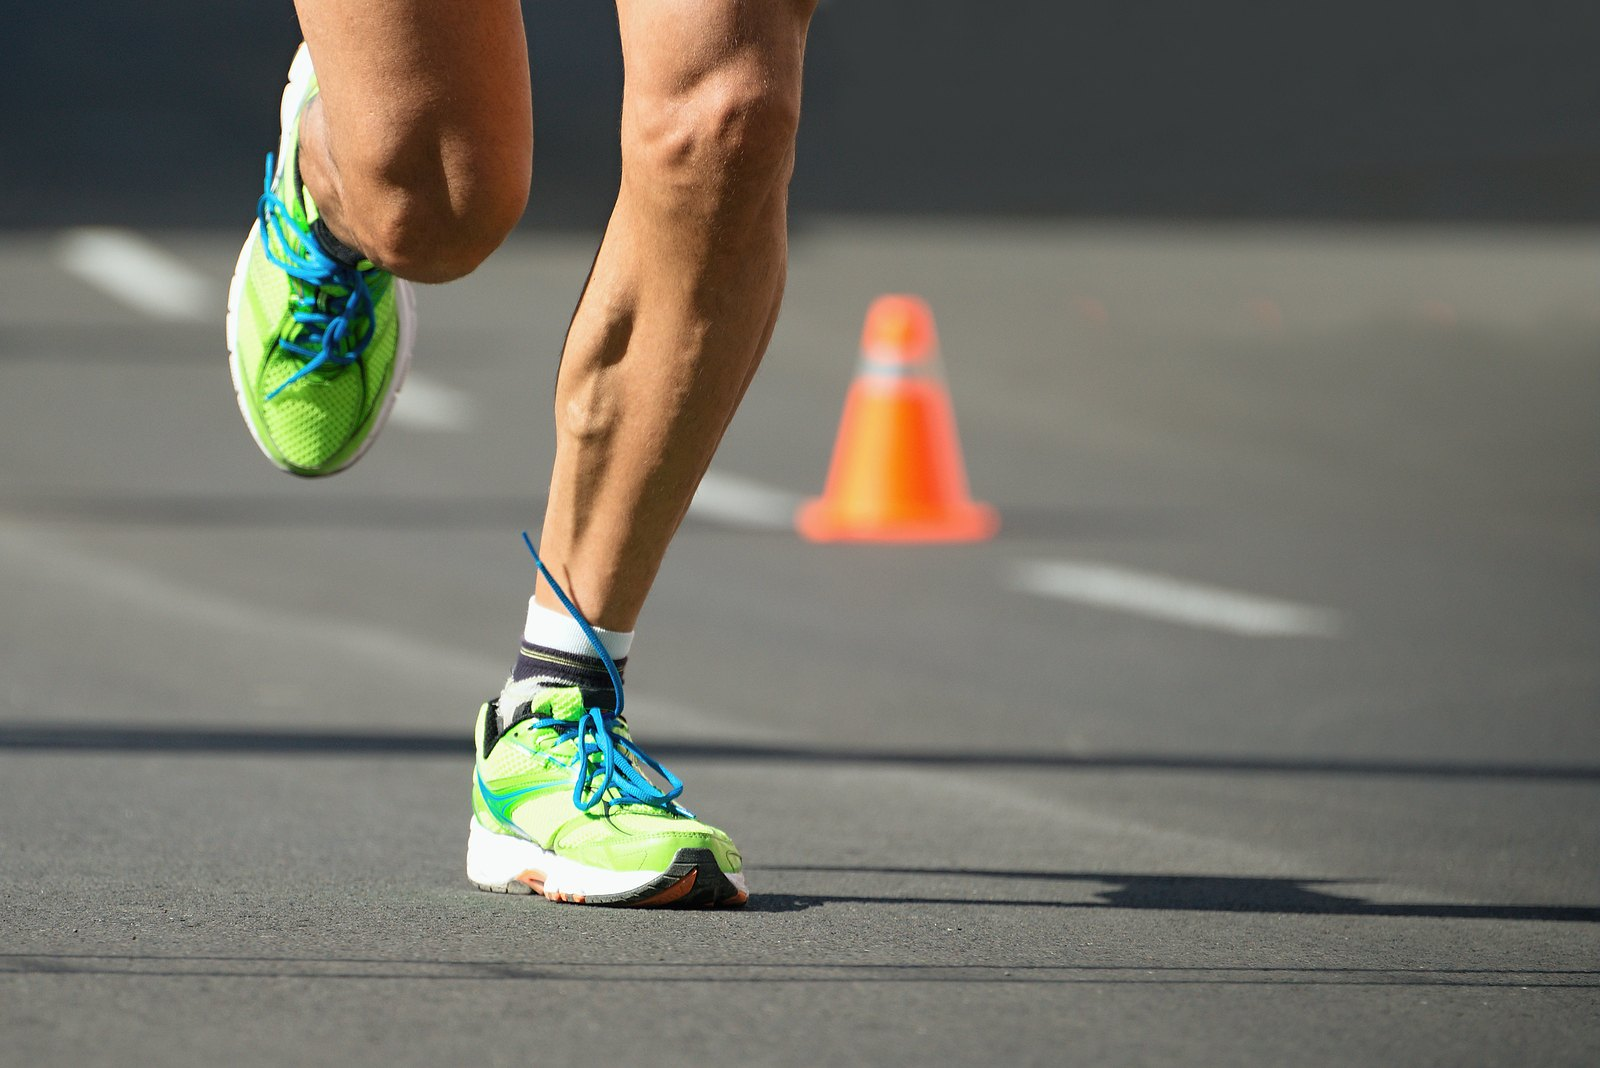 Weight Training For Runners: 5 Reasons You Should Do It